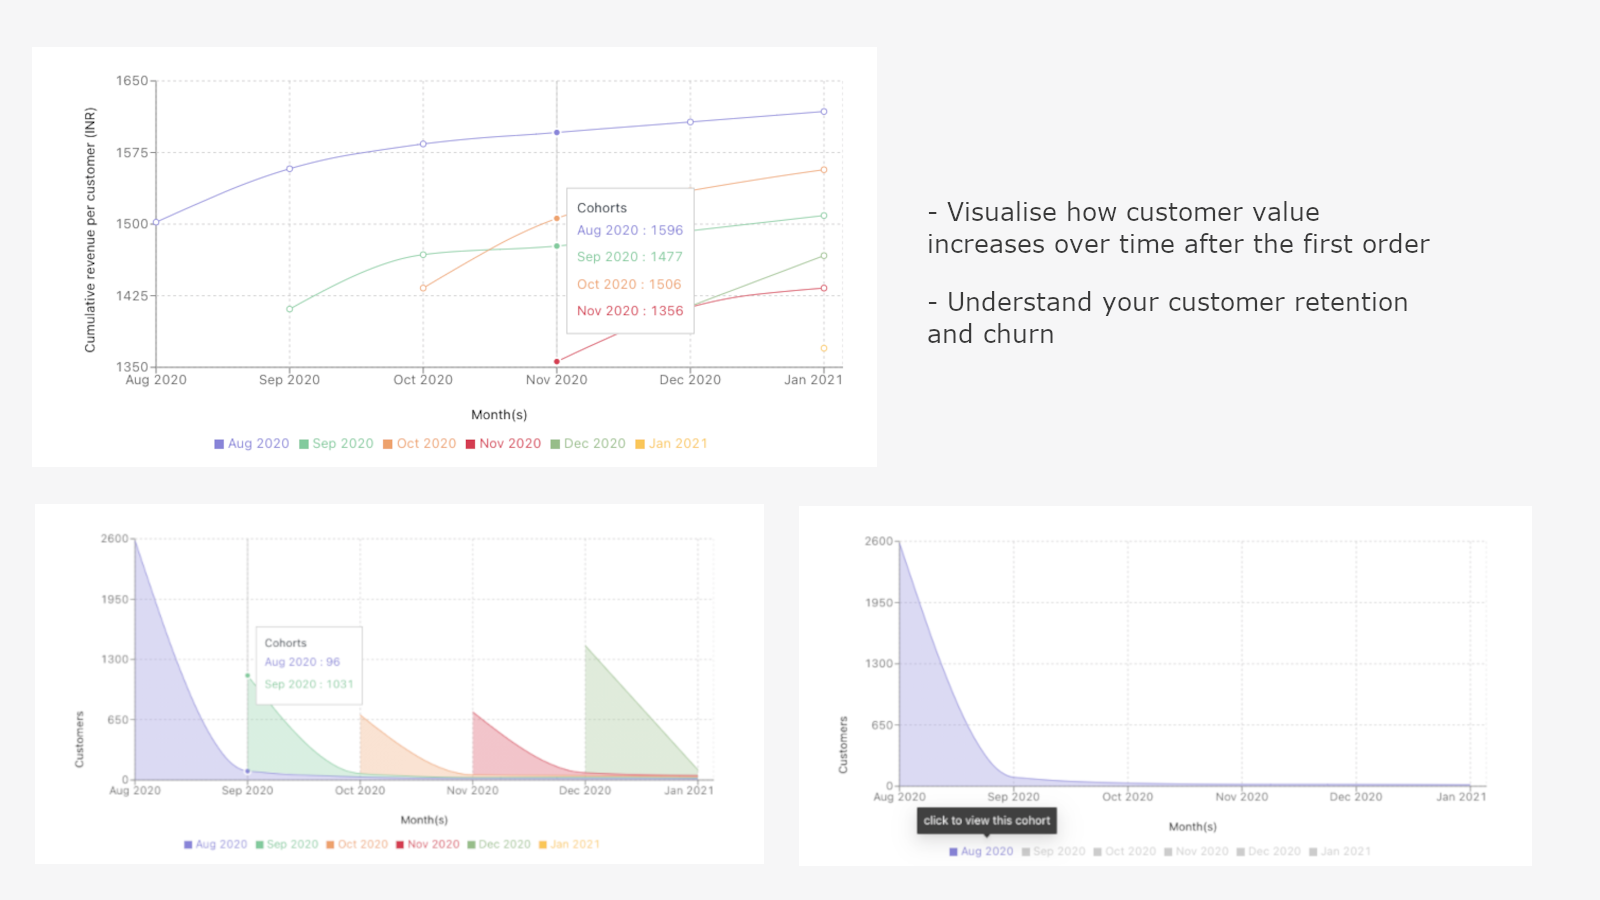 Visualize CLTV, growth curves and retention curves